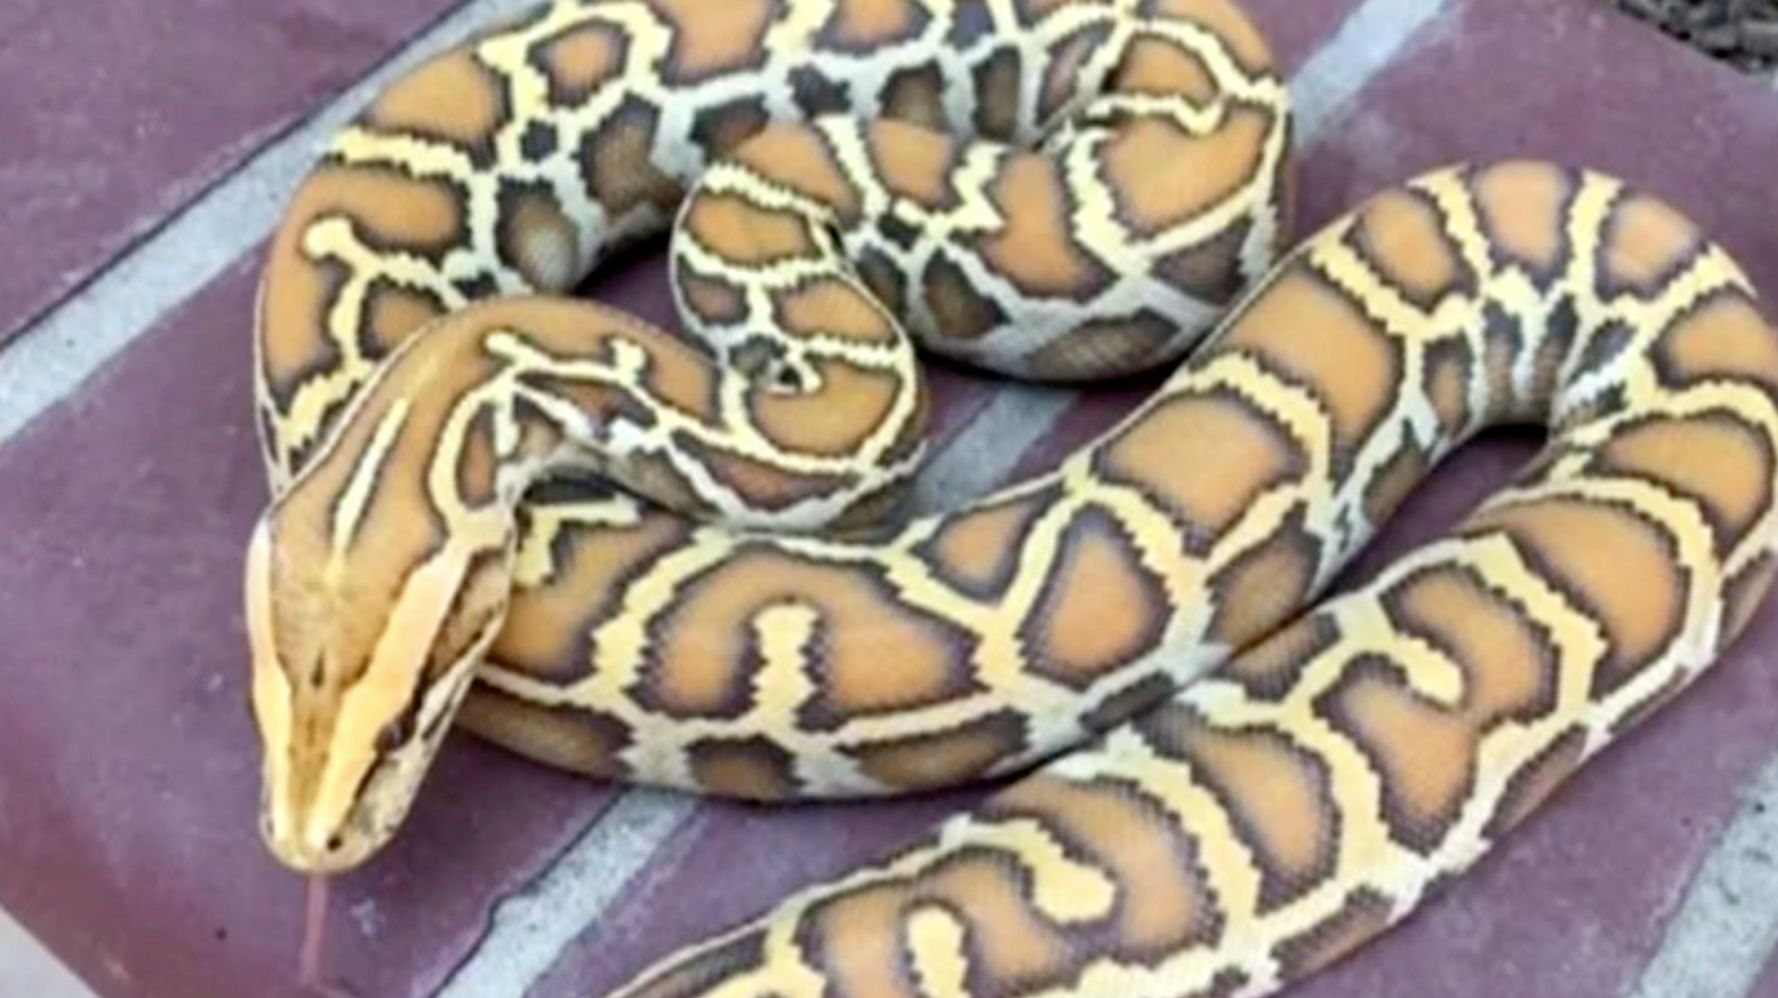 Thieves Steal Duffel Bag Full Of Rare Snakes